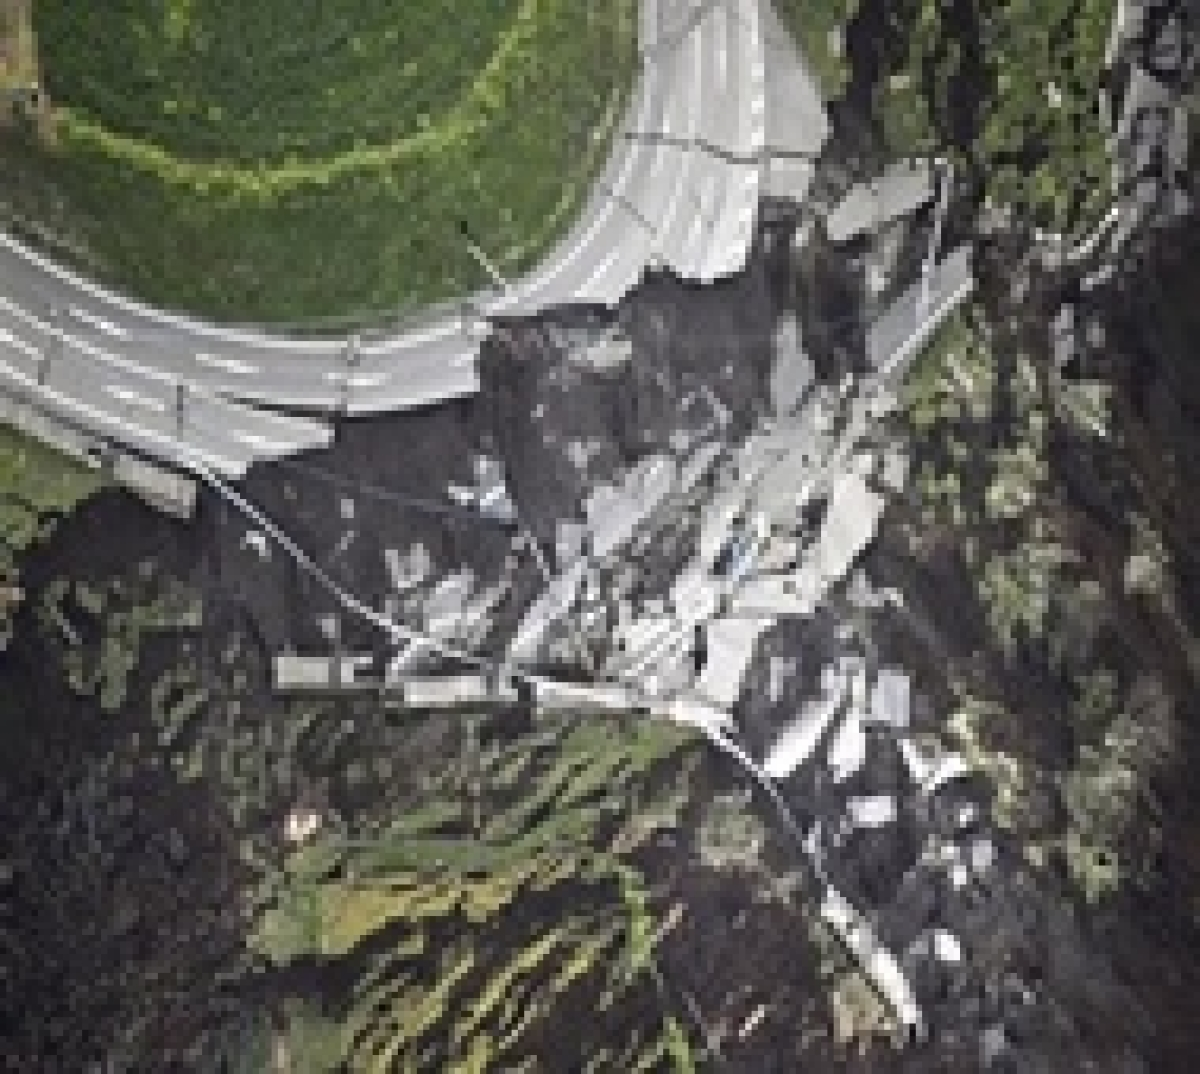 Japan twin earthquake: 45 dead, search ops continue